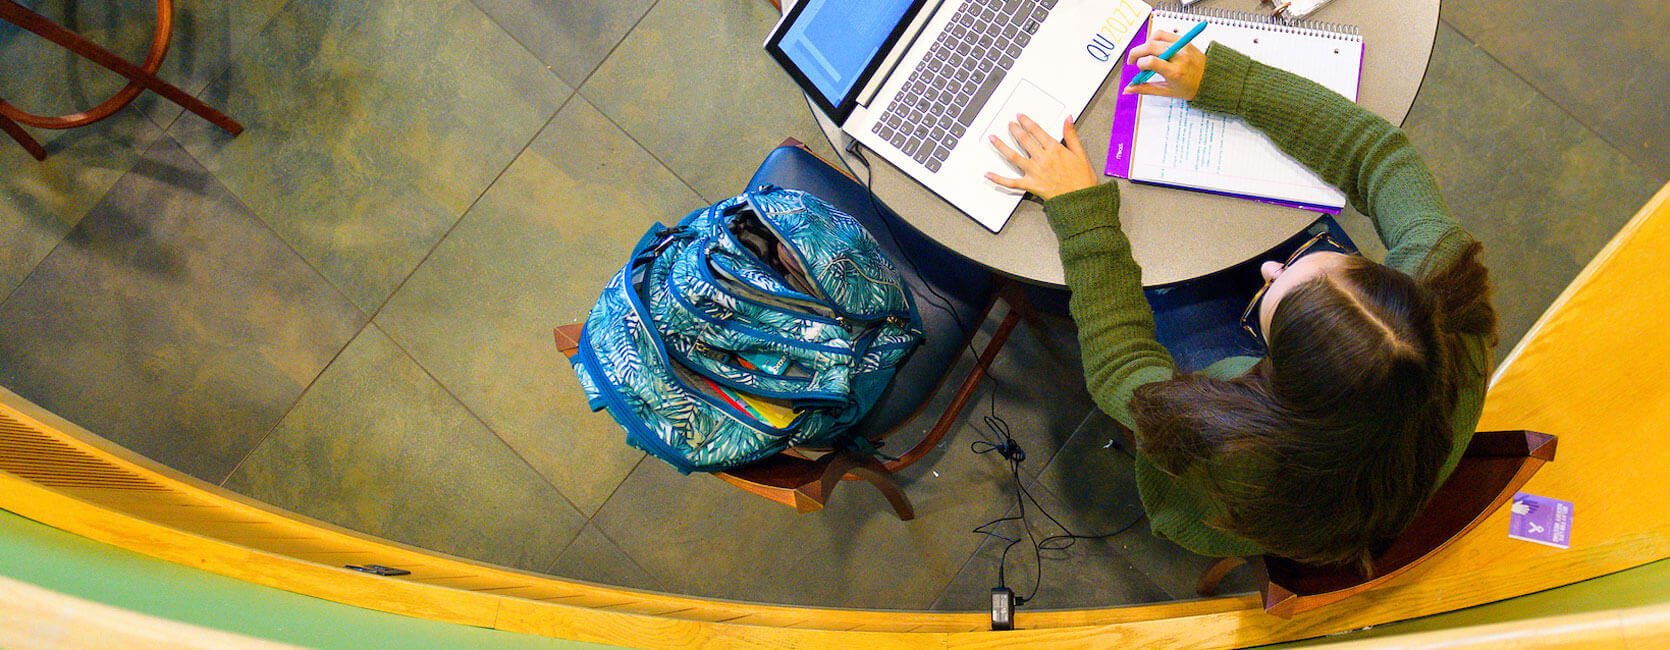 A student works at her laptop in the student center piazza